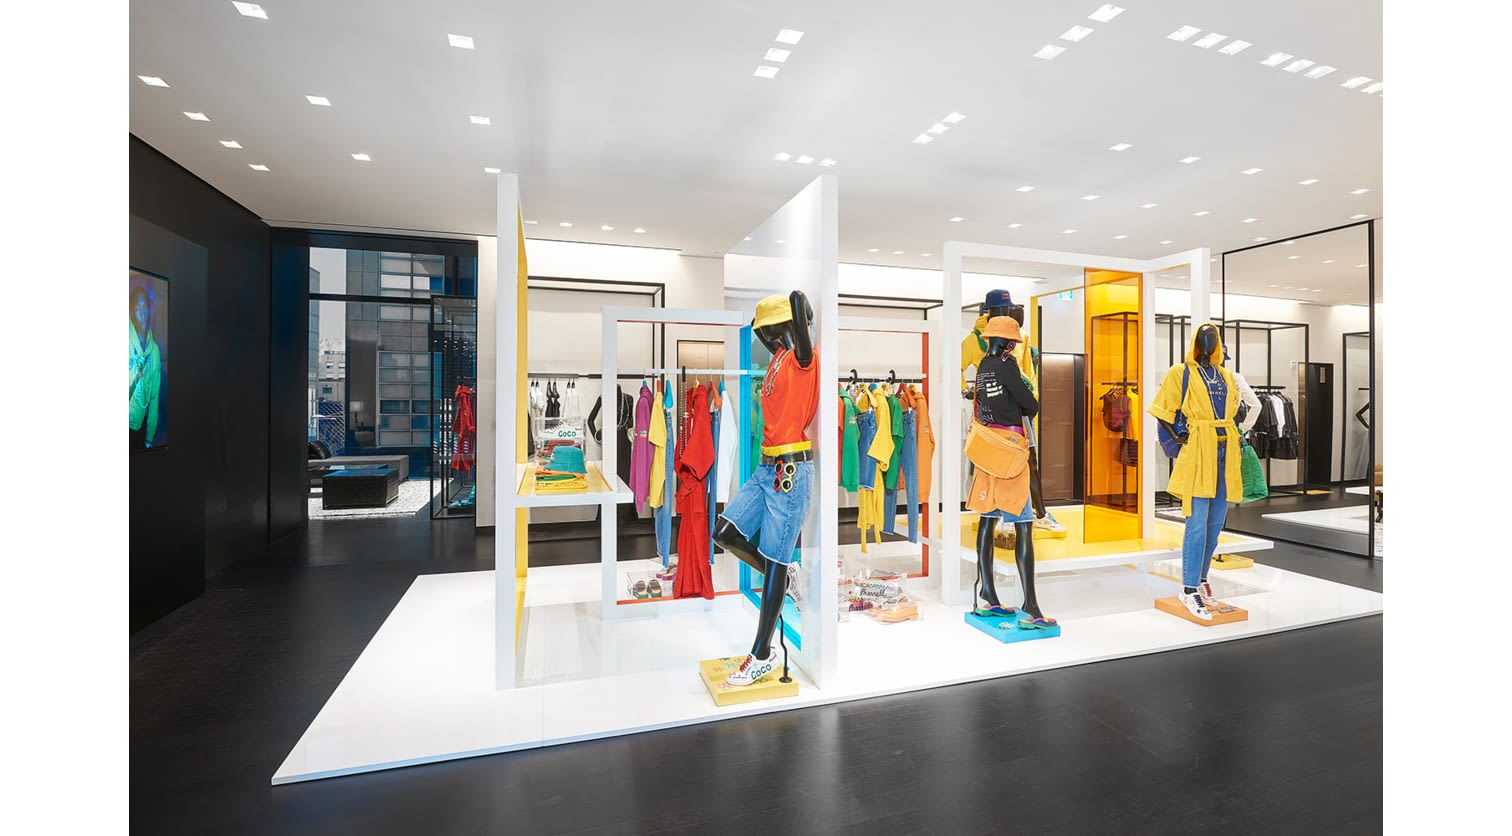 CHANEL-PHARRELL capsule - decor pictures by Olivier Saillant (3)_LD.jpg